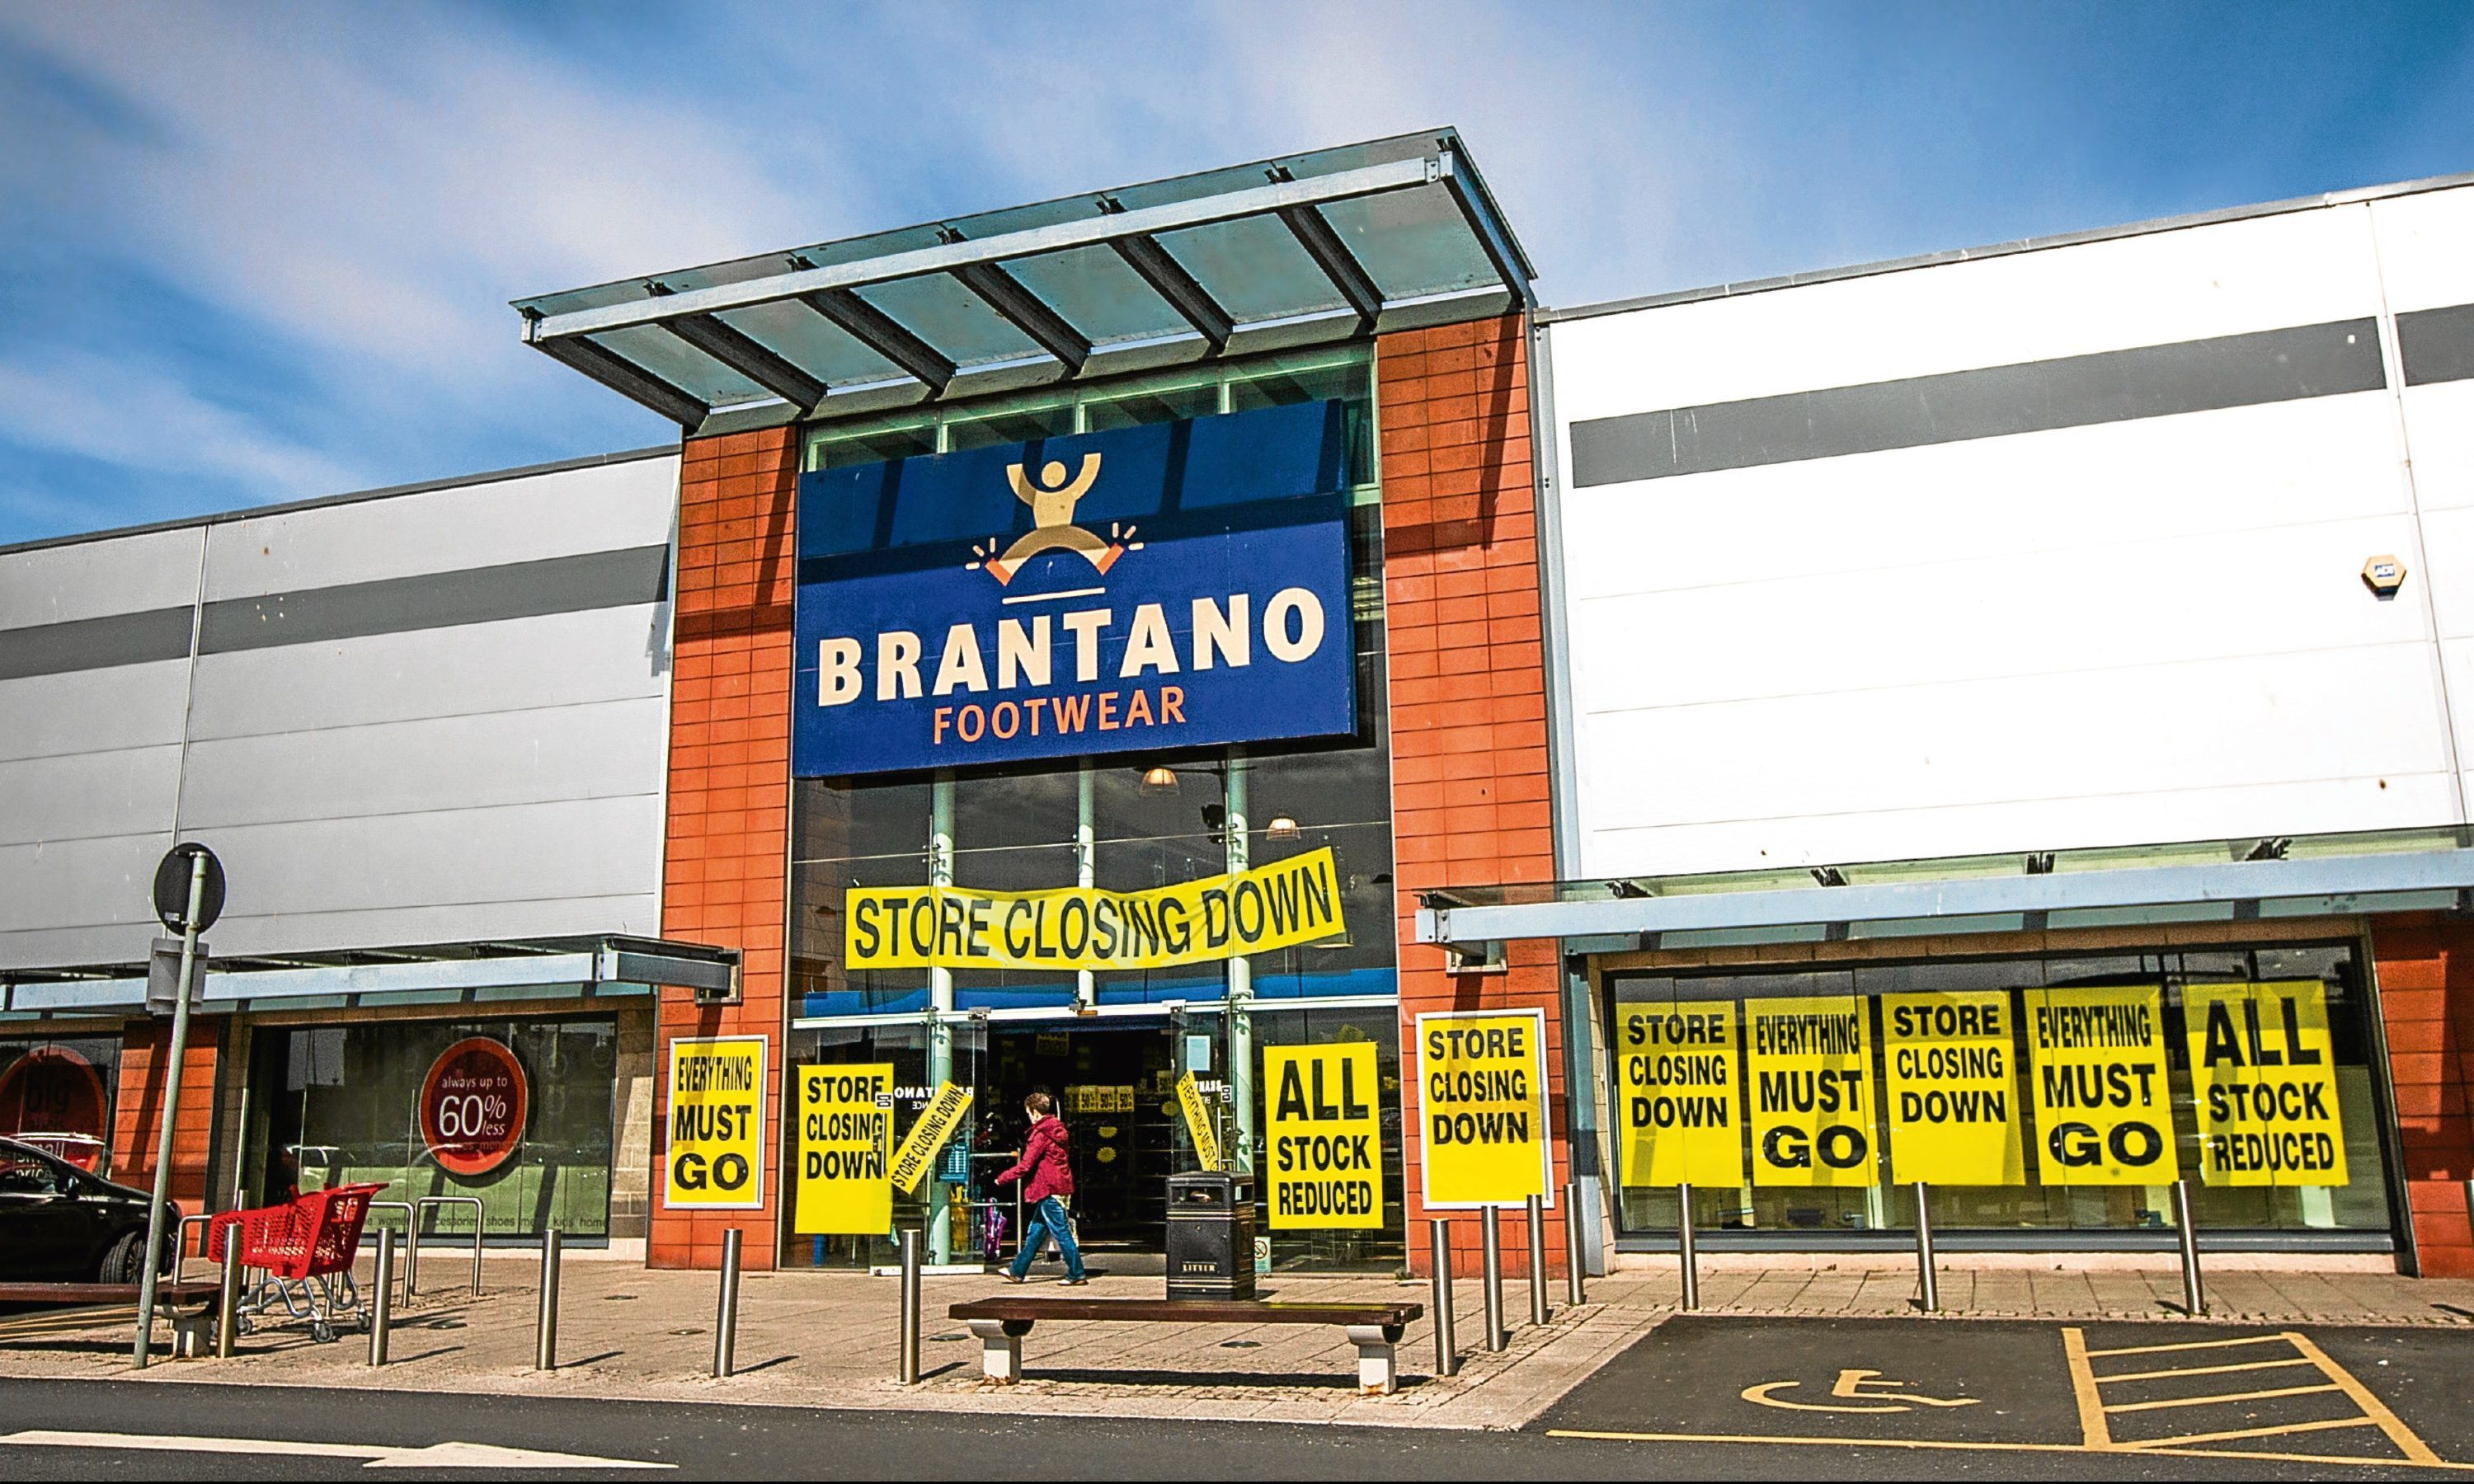 The Brantano shop with signs warning of its impending closure